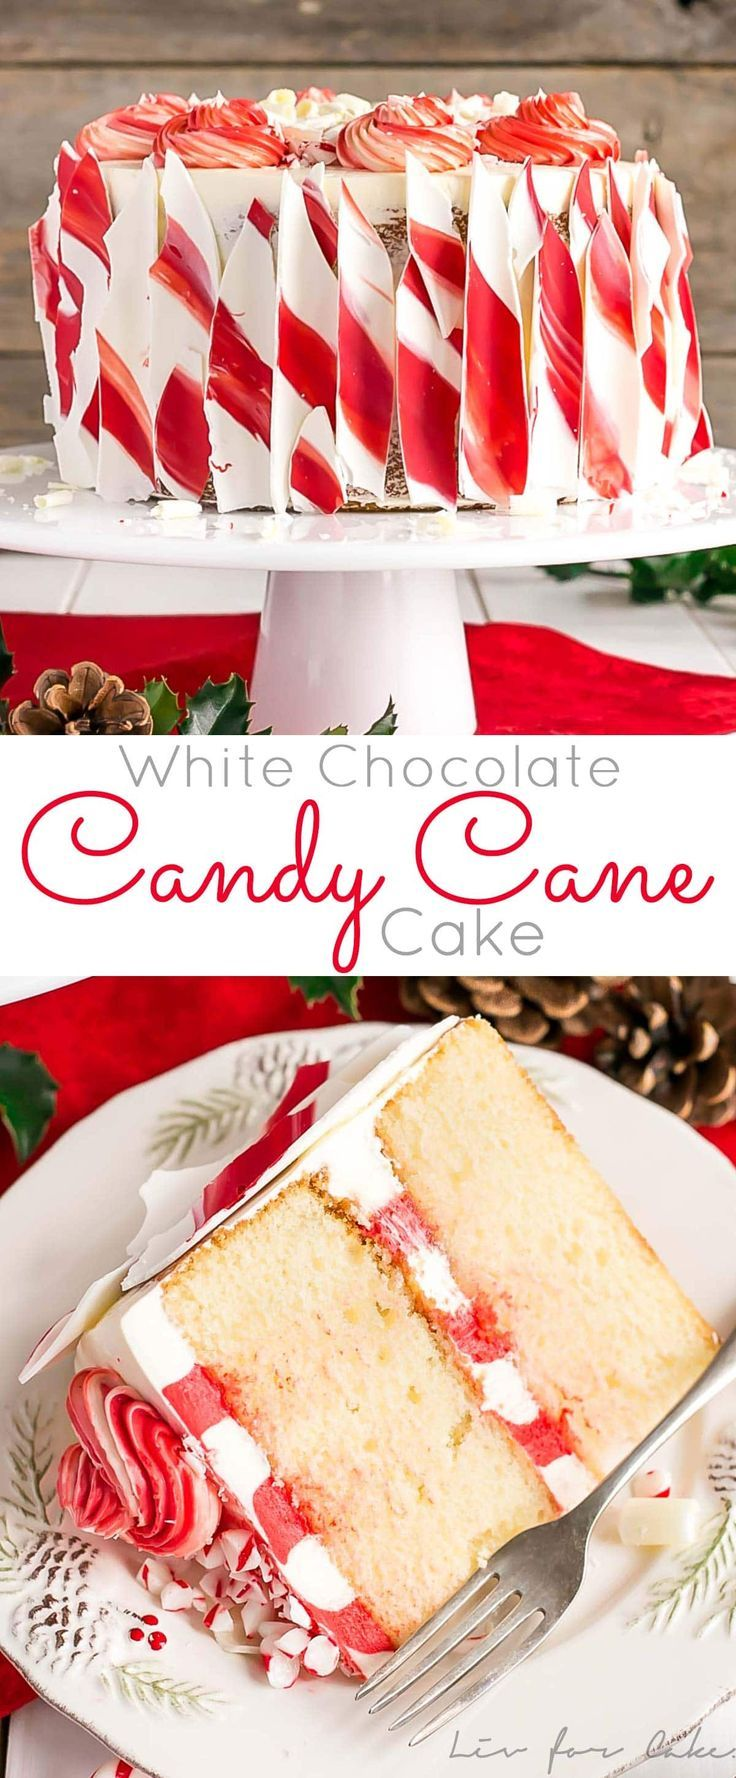 This White Chocolate Candy Cane Cake is the perfect addition to your holiday celebrations!   livforcake.com